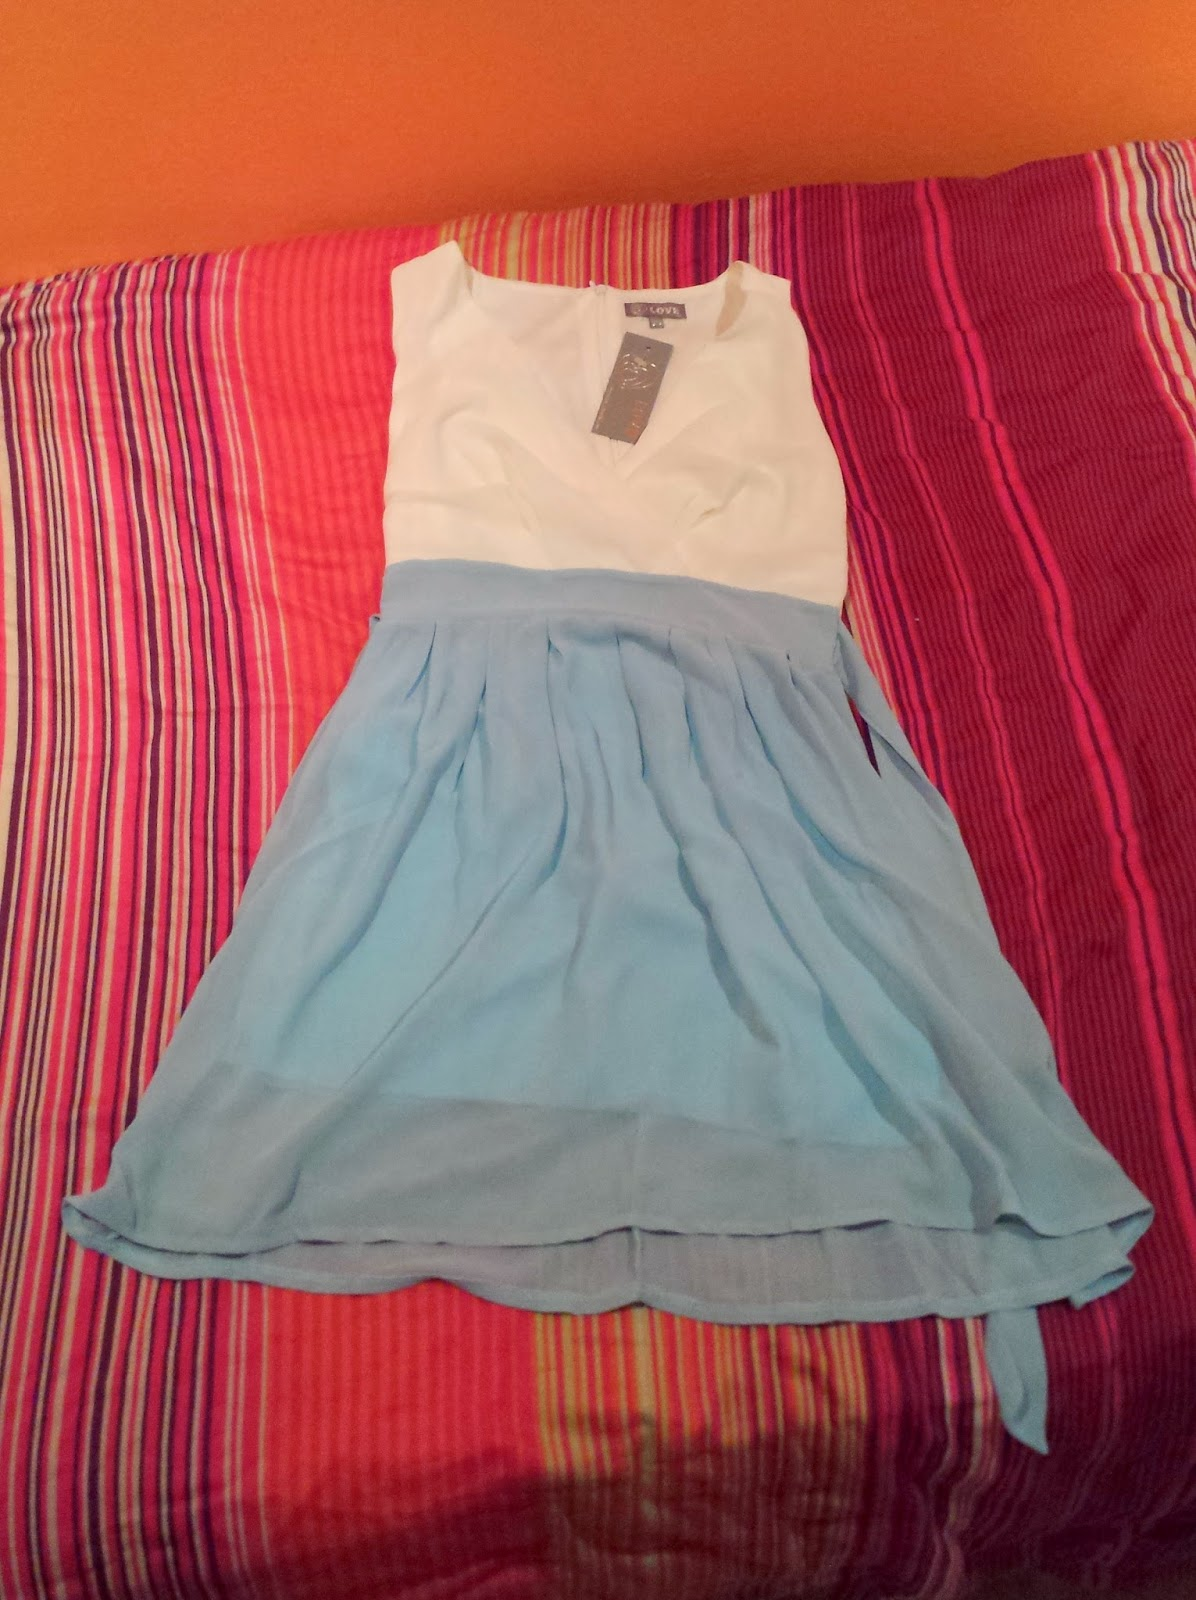 Clothes & Dreams: Self-rewarding during exams (shoplog): In Love With Fashion Powder Blue And Cream Cross Over Contrast Dress